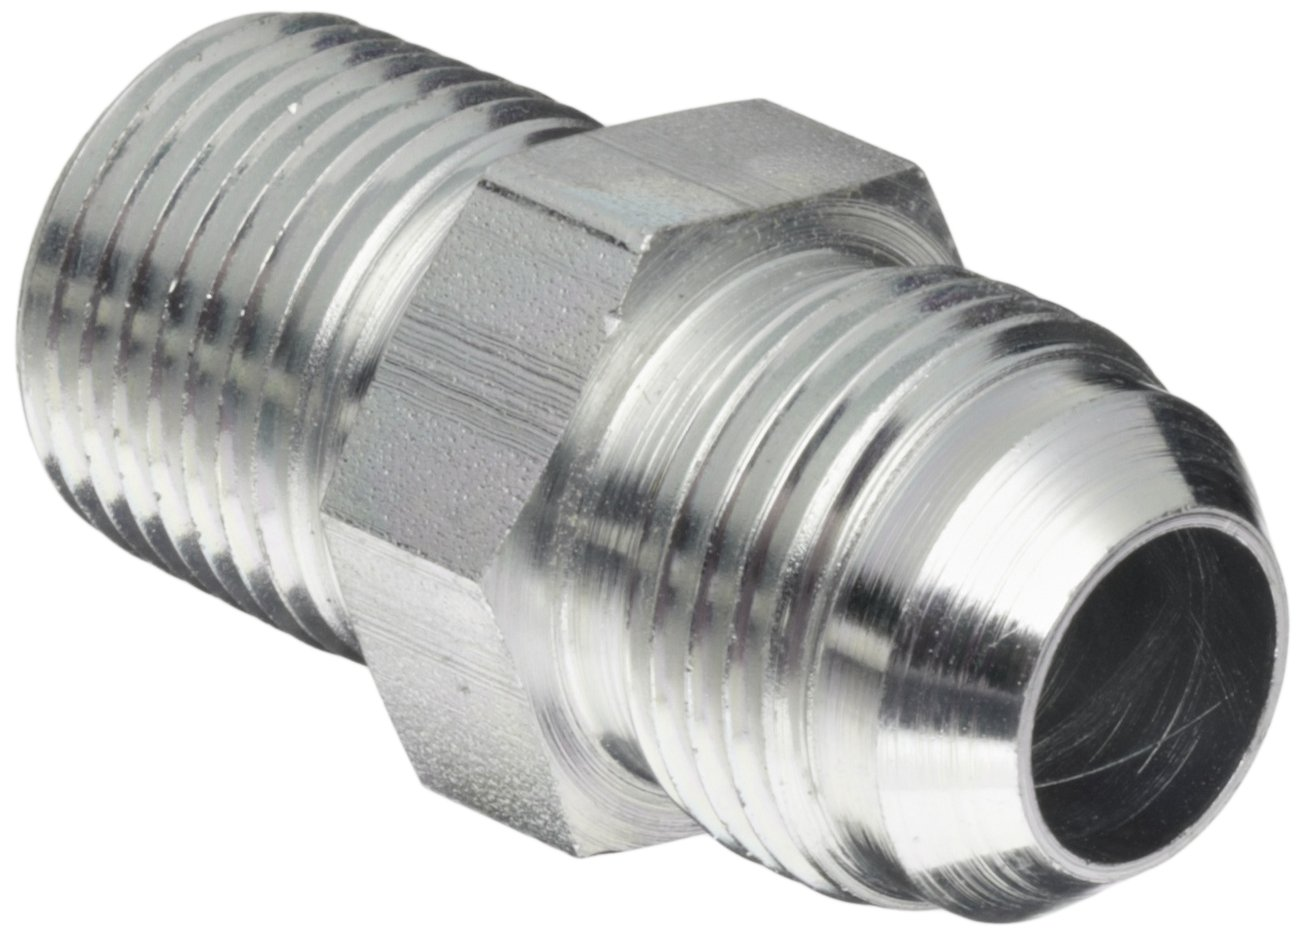 m Male 37 Degree JIC End Size 1//2 Tube OD JIC 37 Degree /& NPT End Types Carbon Steel Male Pipe Thread Eaton Aeroquip 2021-6-8S Male Connector 1//2 JIC m x 3//8 NPT